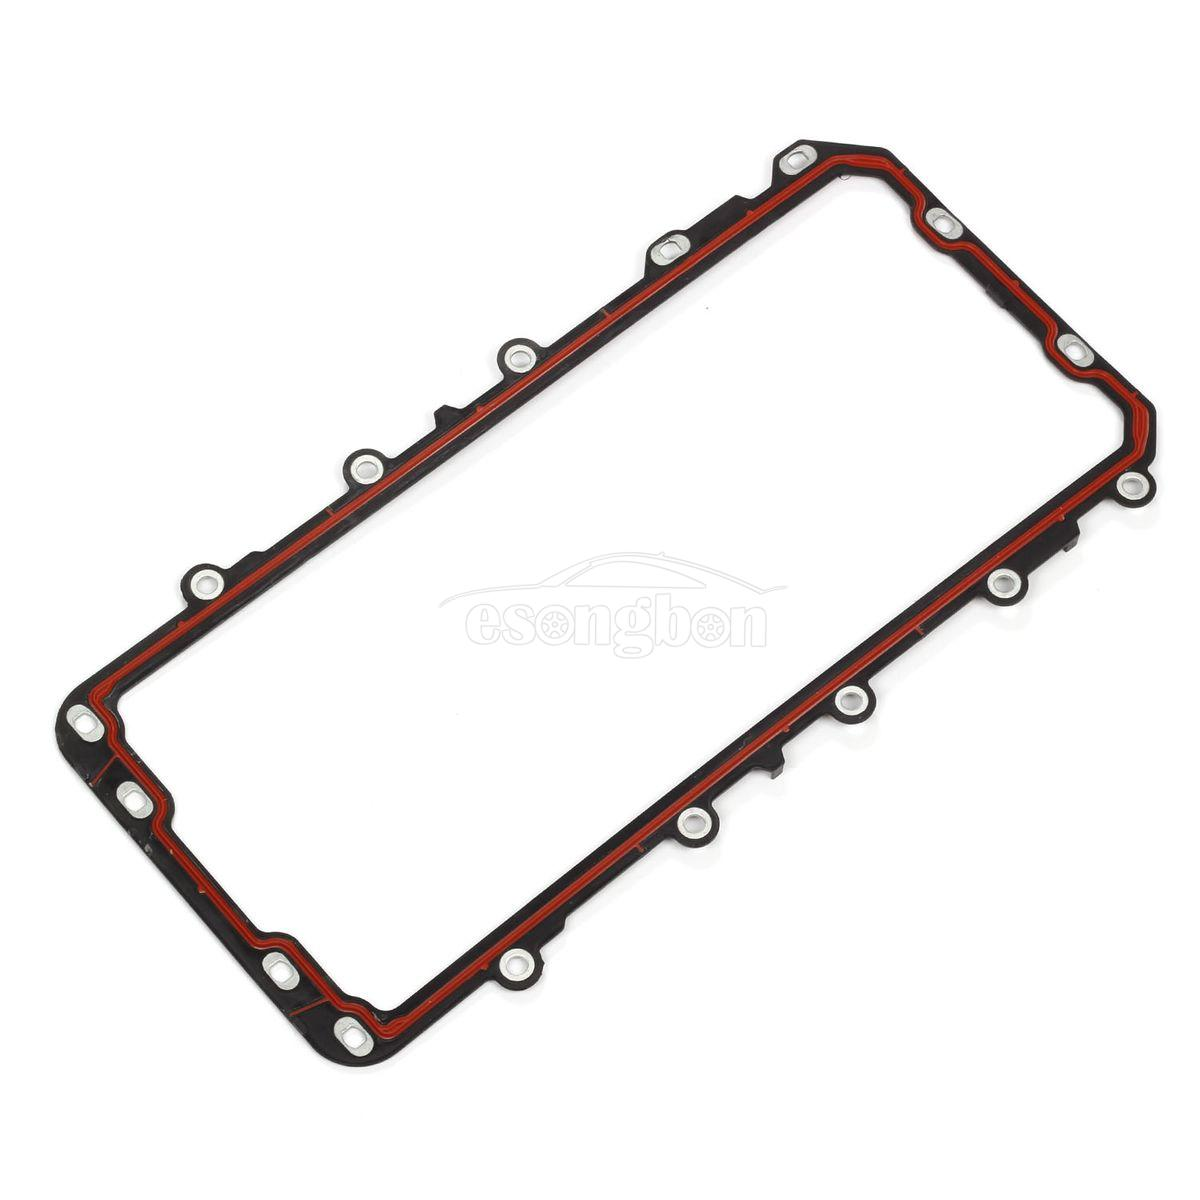 Engine Oil Pan Gasket OS34307R For Ford Crown Victoria 4